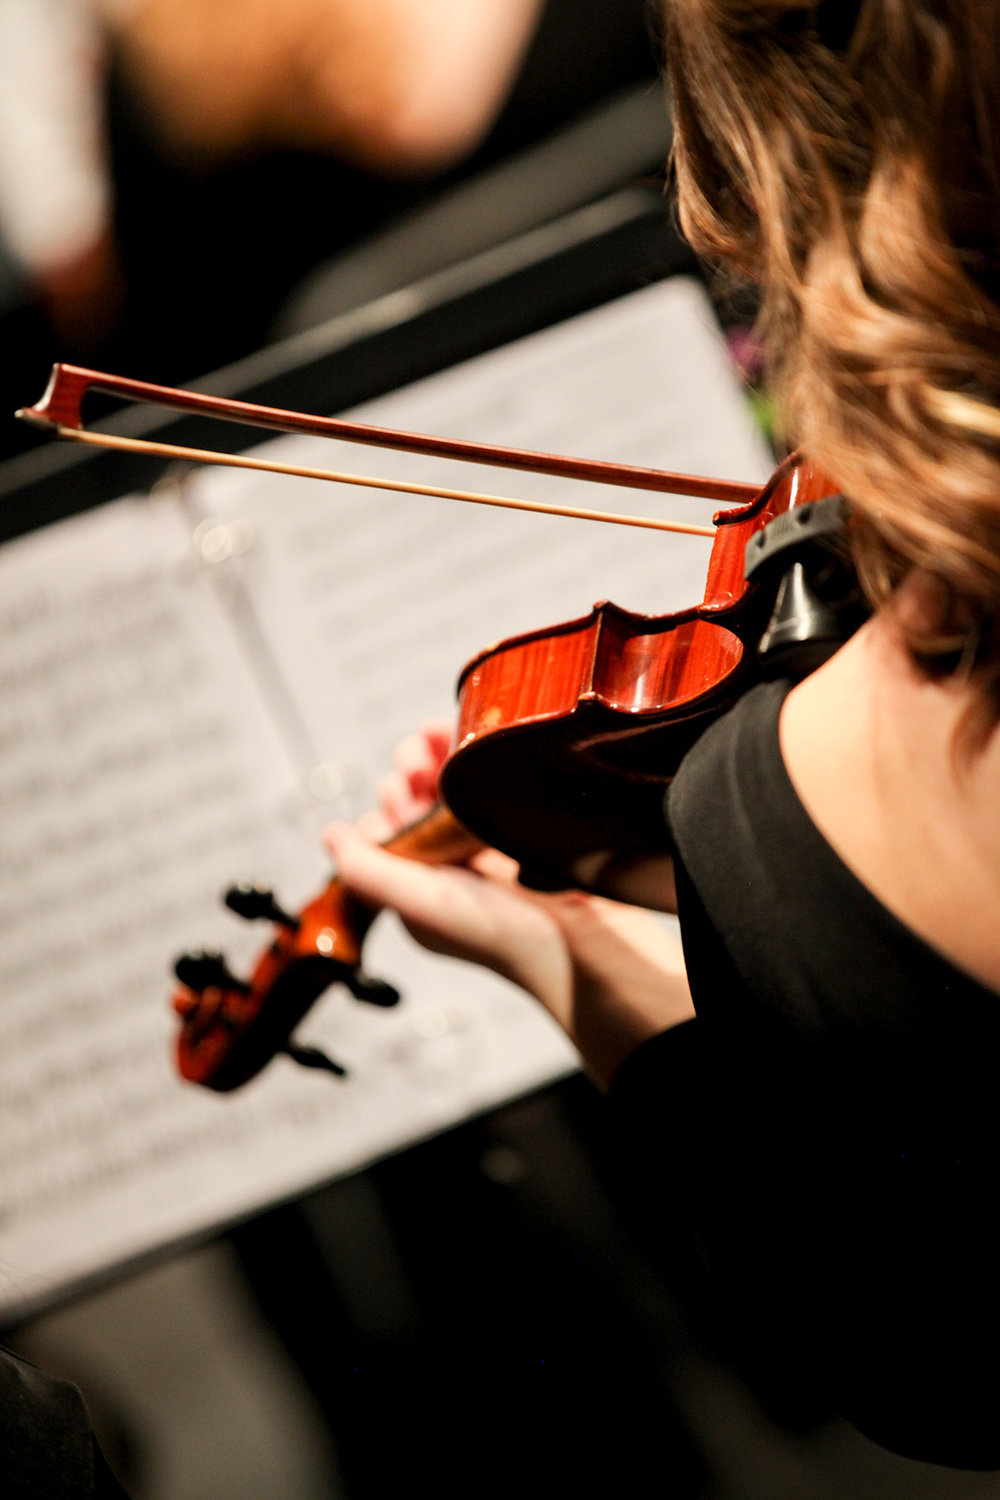 Violin-player-from-above.jpg